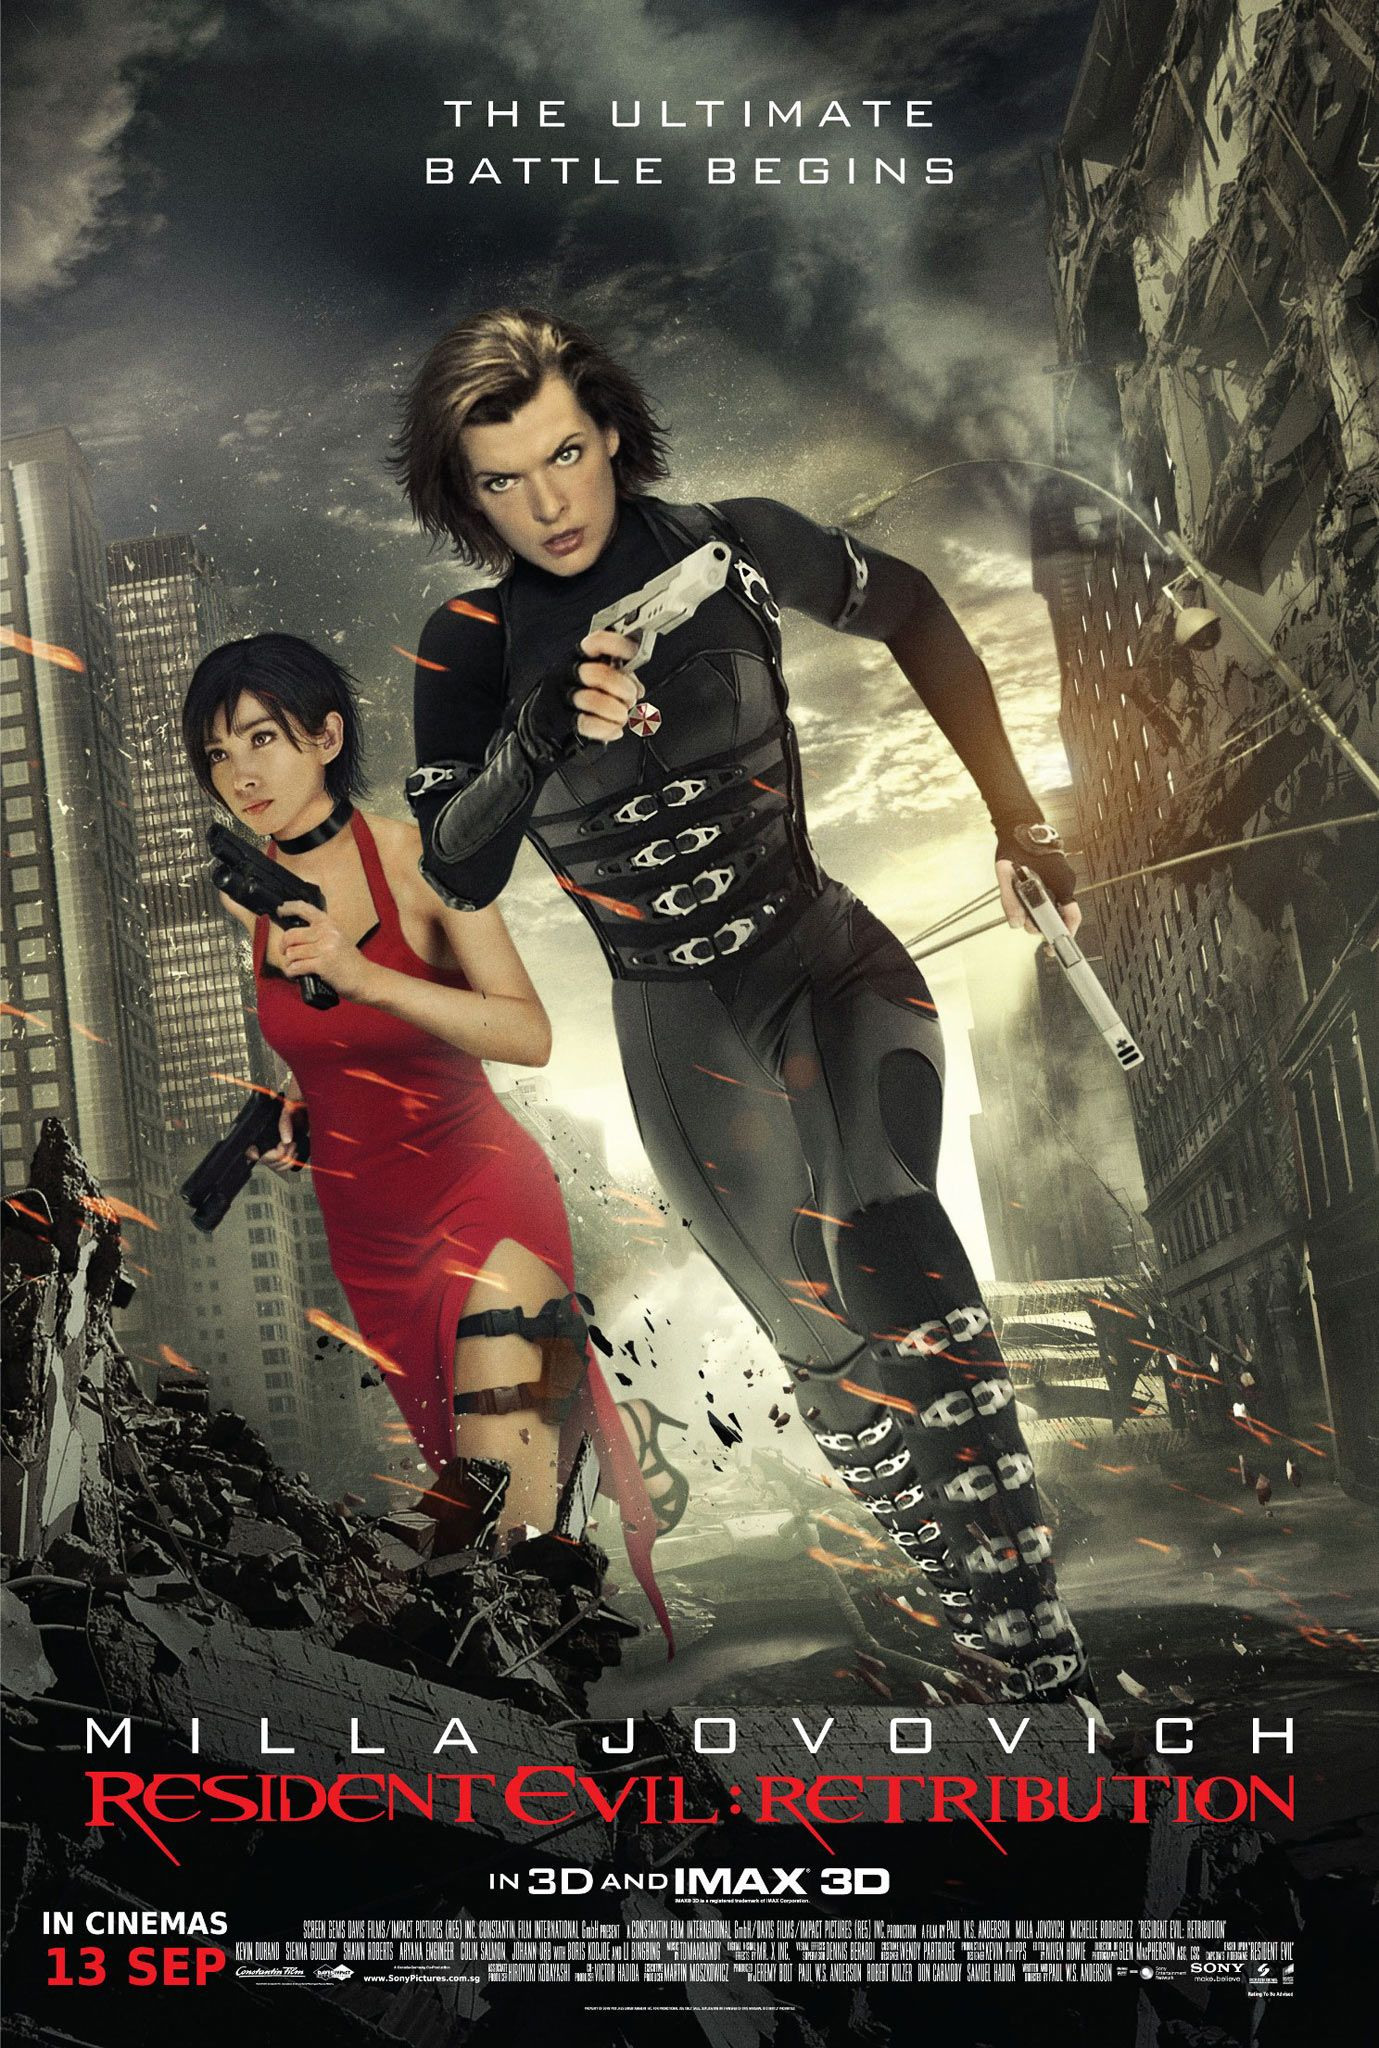 Resident Evil Movie Poster Resident Evil Retribution Poster Free Download 1379x2048 30158 Resident Evil Movie Resident Evil 5 Resident Evil